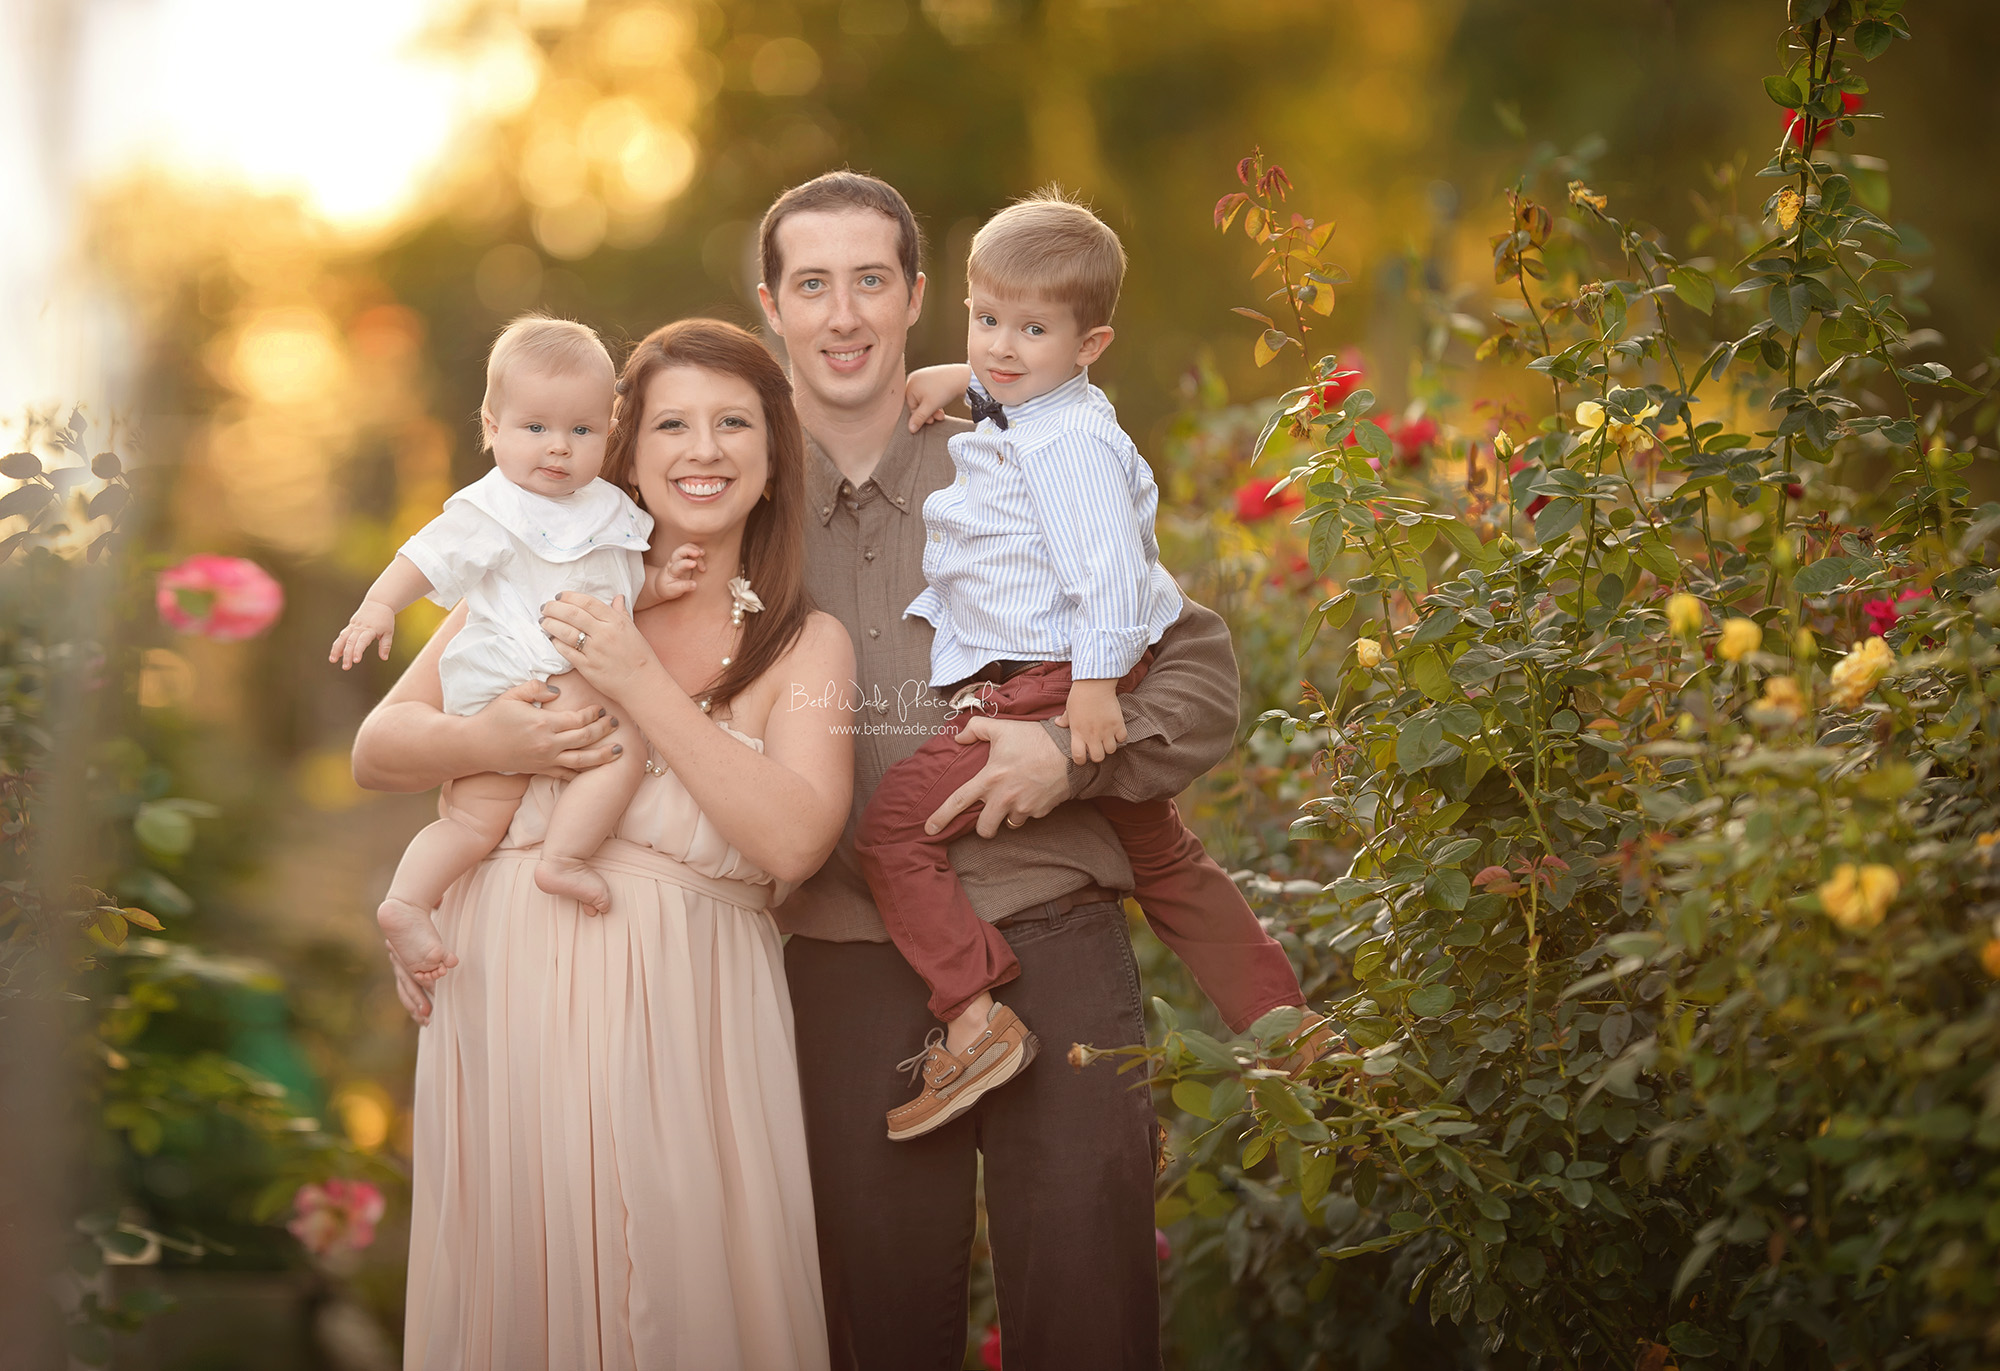 sunshine daydream ~ the o family of 4 {north carolina baby photographer}